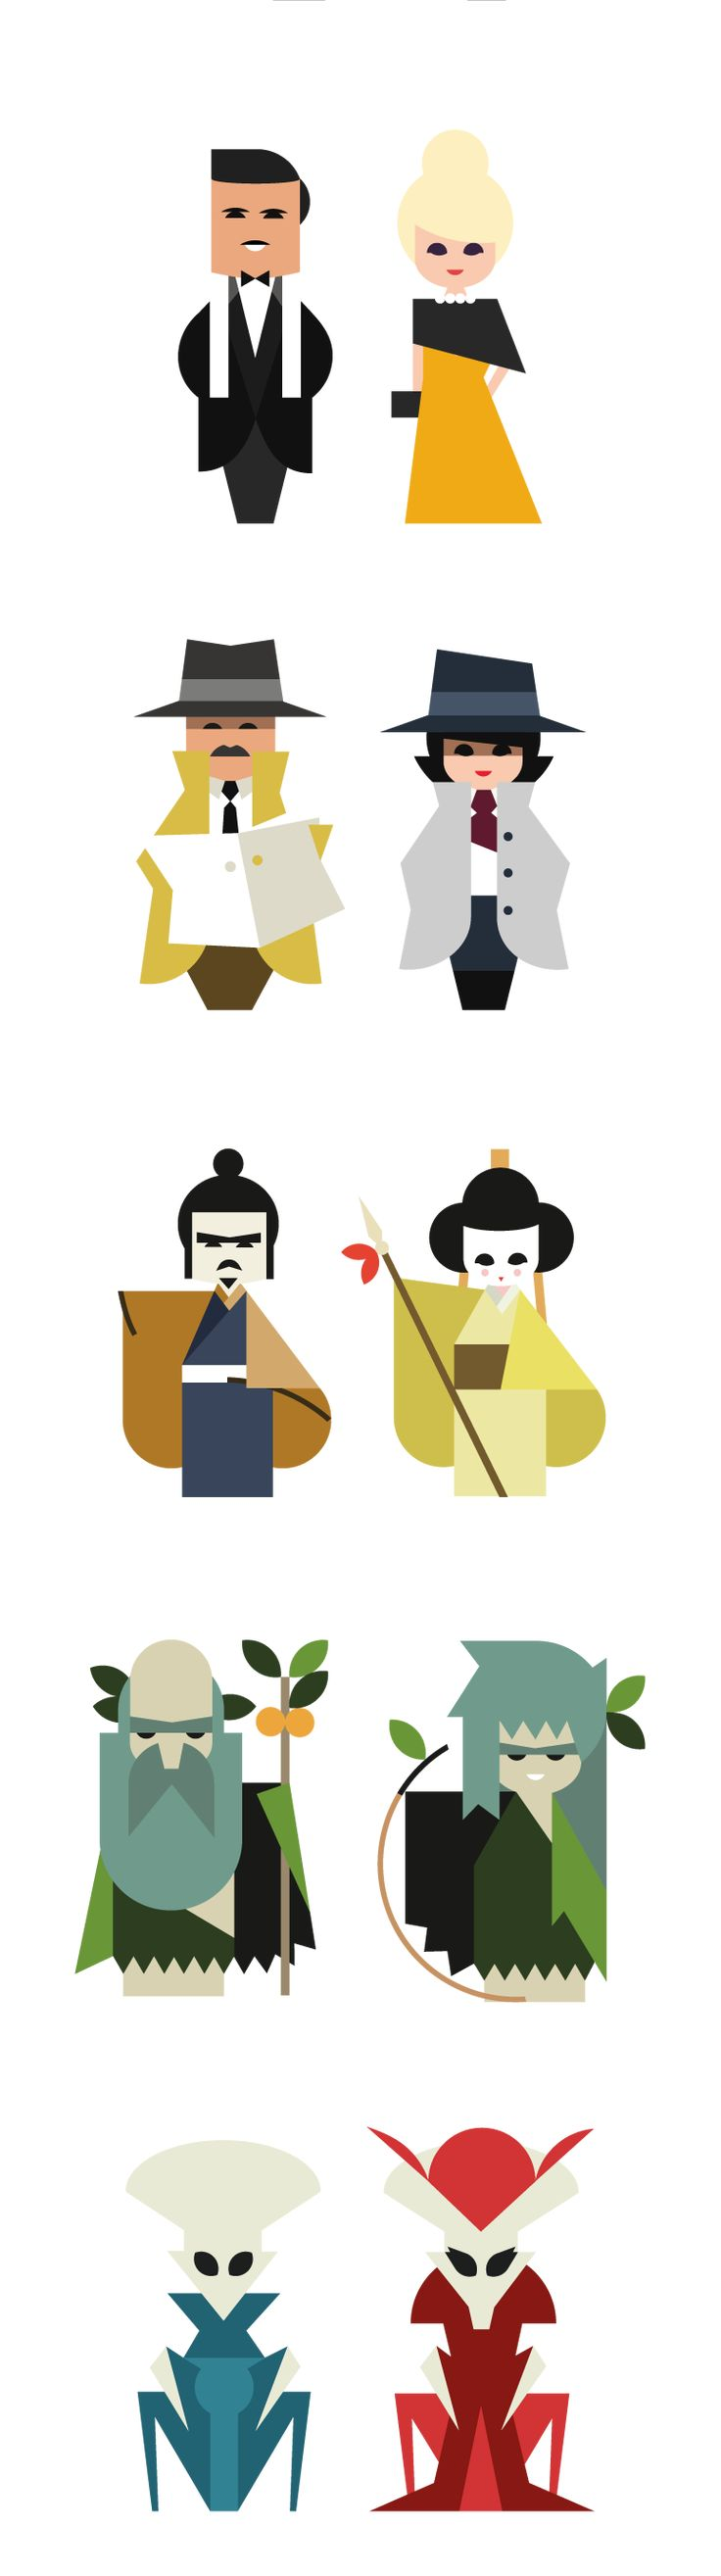 Booquo Character Icons by Hey (Barcelona)